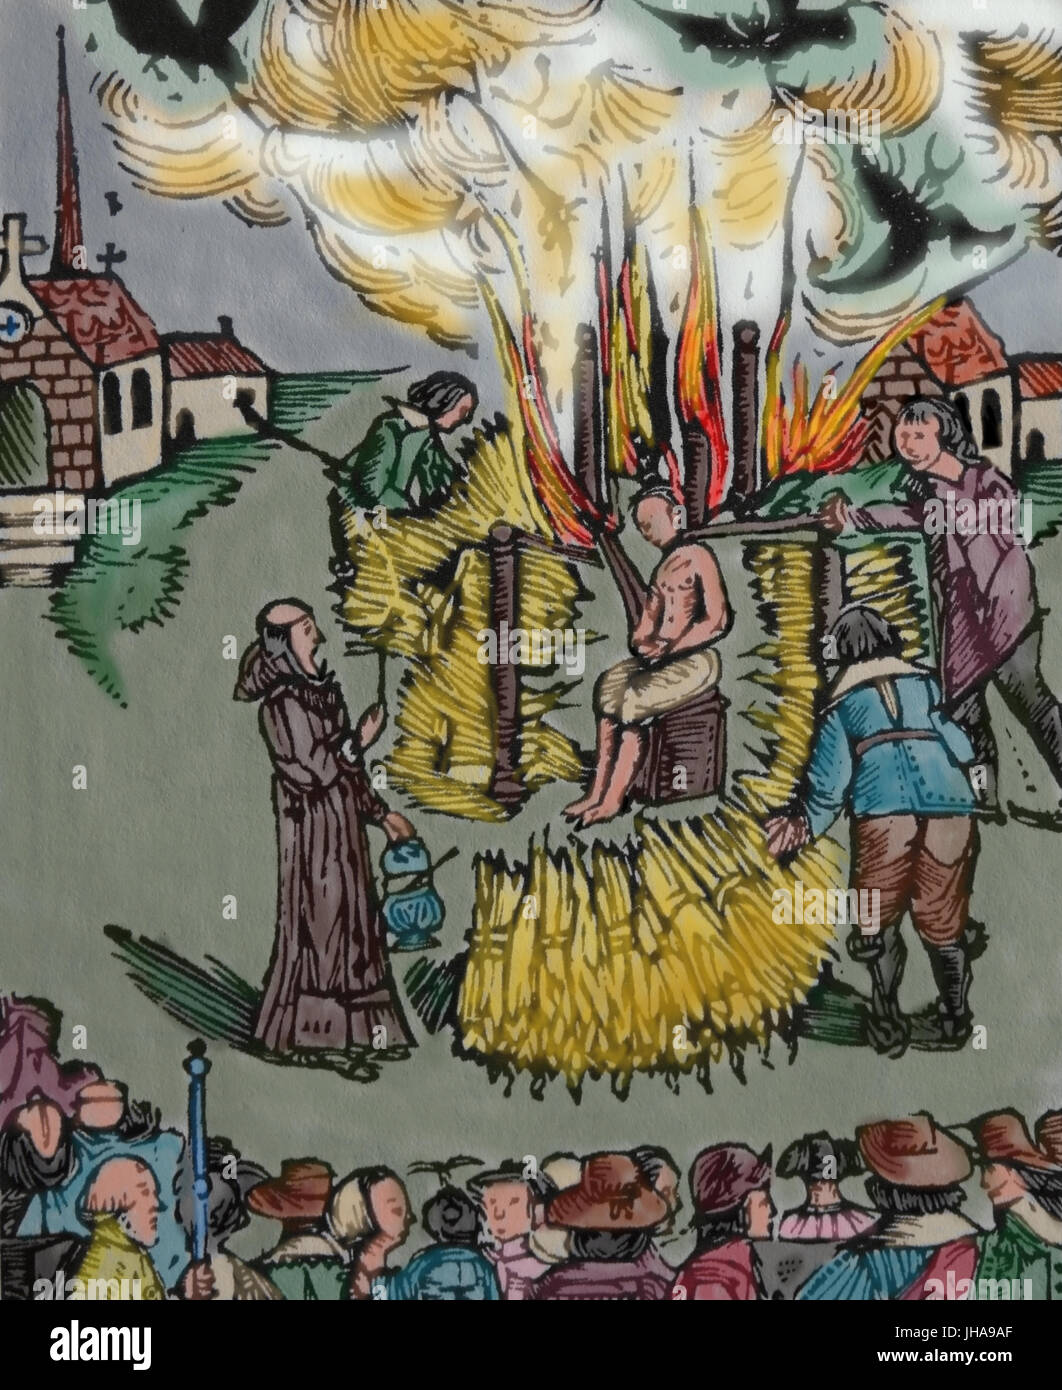 Inquisition. Public burning of French Catholic priest Urbain Grandier for witchcraft. Loudun, 1634. France. Engraving. - Stock Image